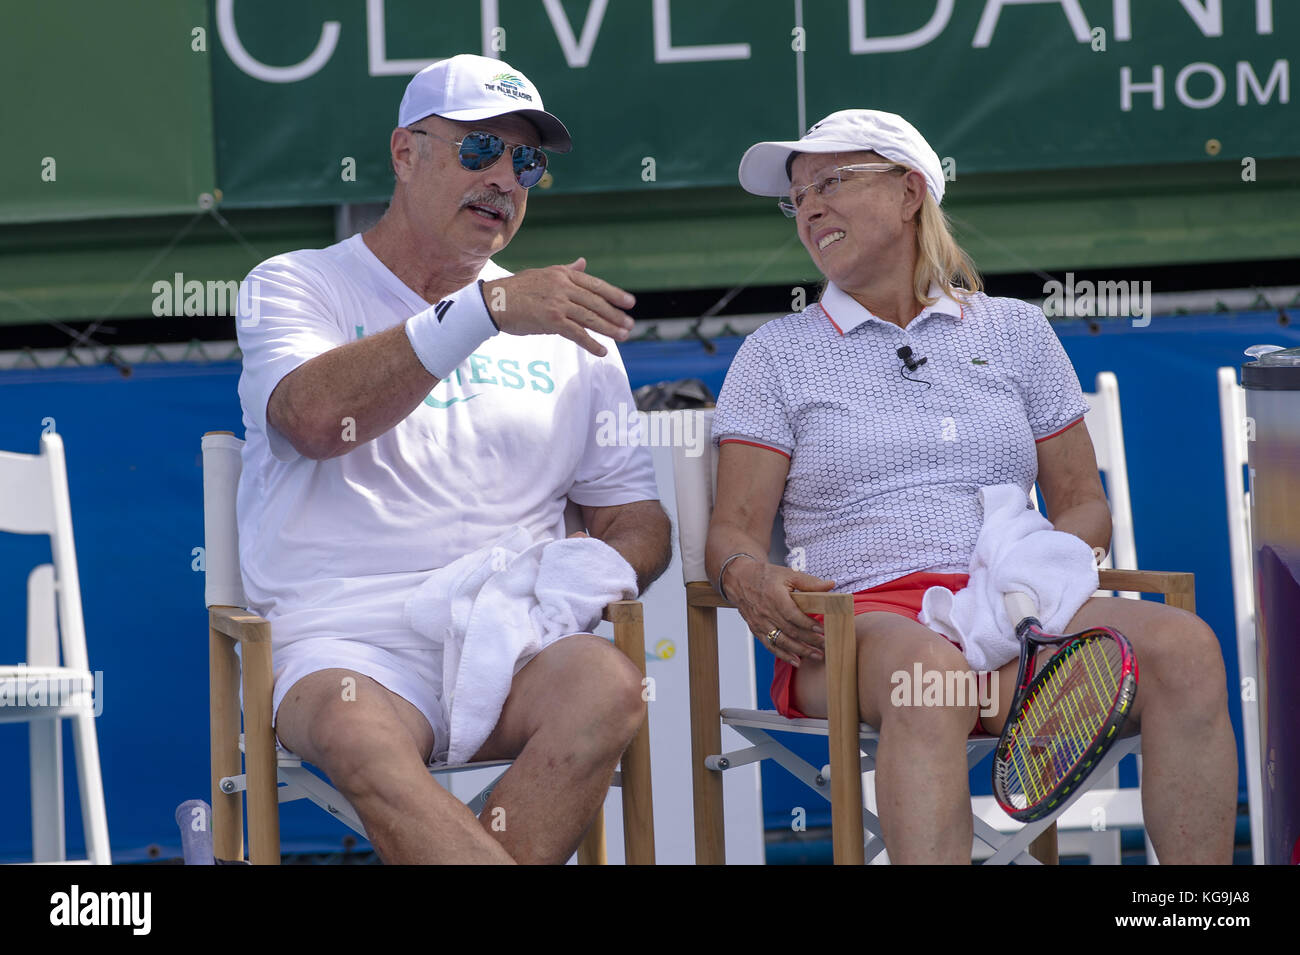 DELRAY BEACH, FL - NOVEMBER 04: Dr  Phil McGraw, Martina Navratilova